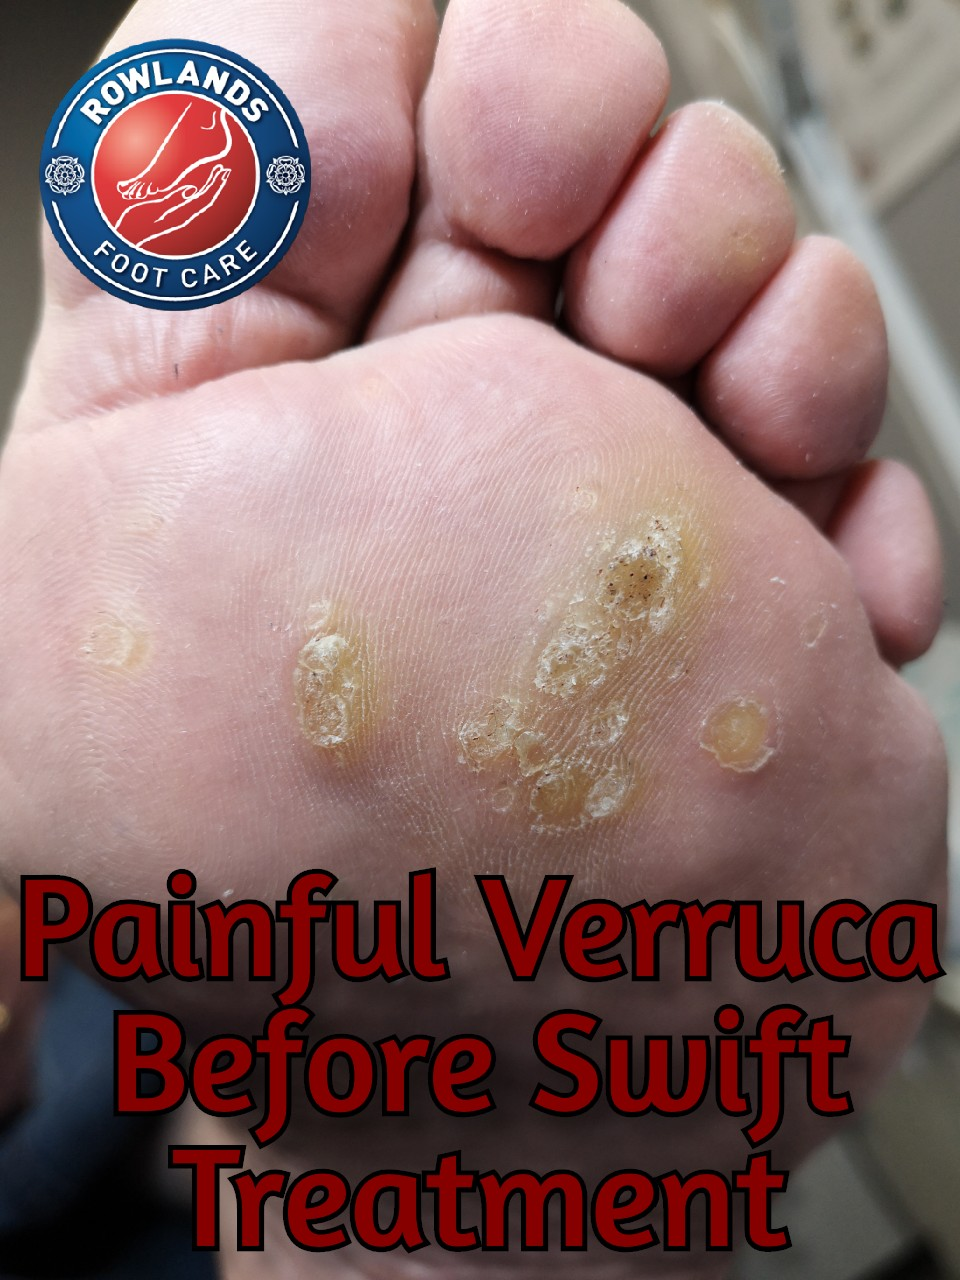 Painful Verruca Before Swift Treatment